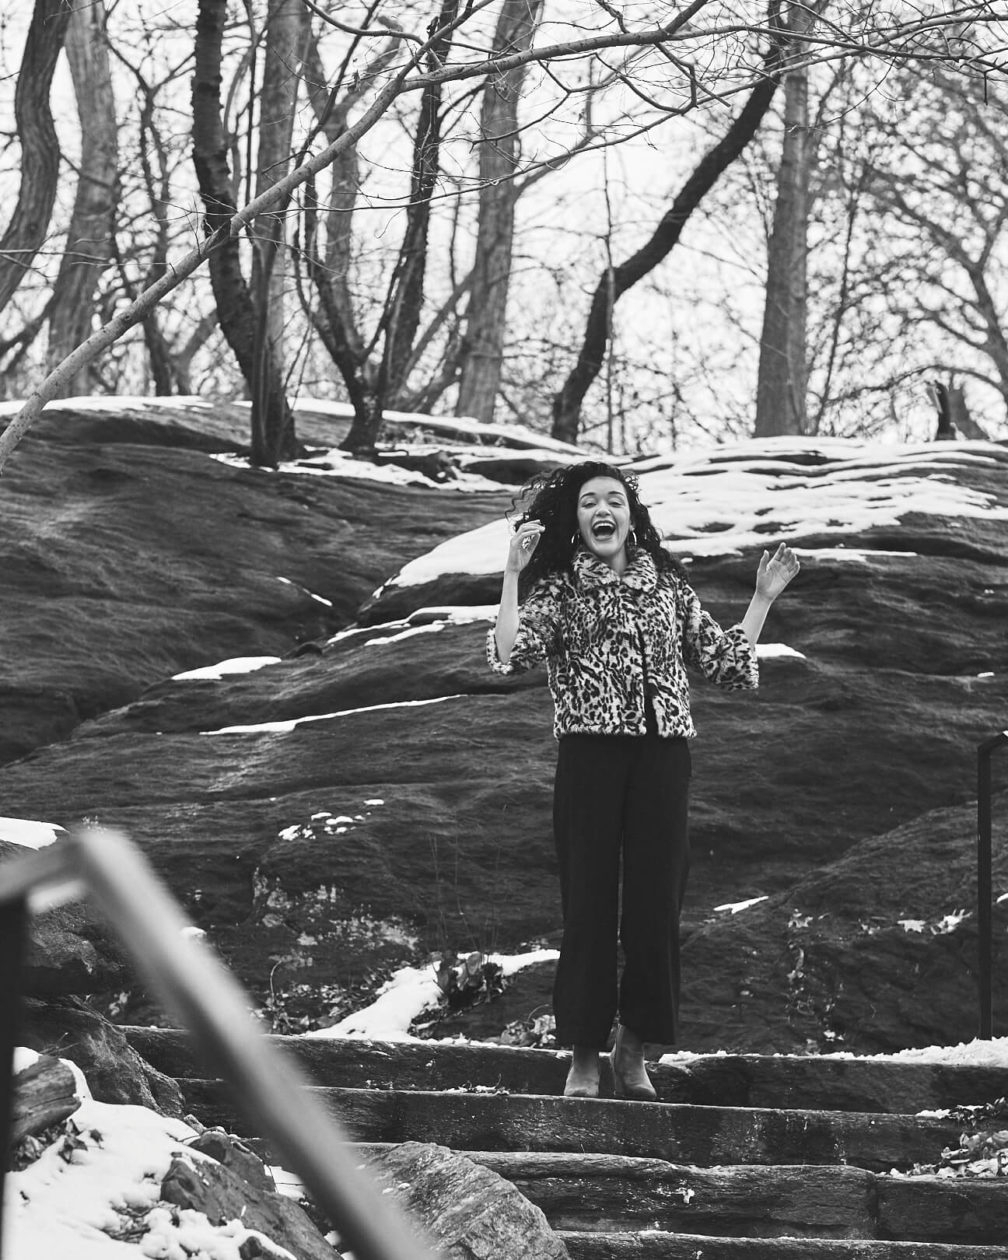 Fuji X Pro2 with xf 56mm f1.2 - Black and White Women's Fashion Photography in Central Park - Woman with leopard print jacket - Model: Jess